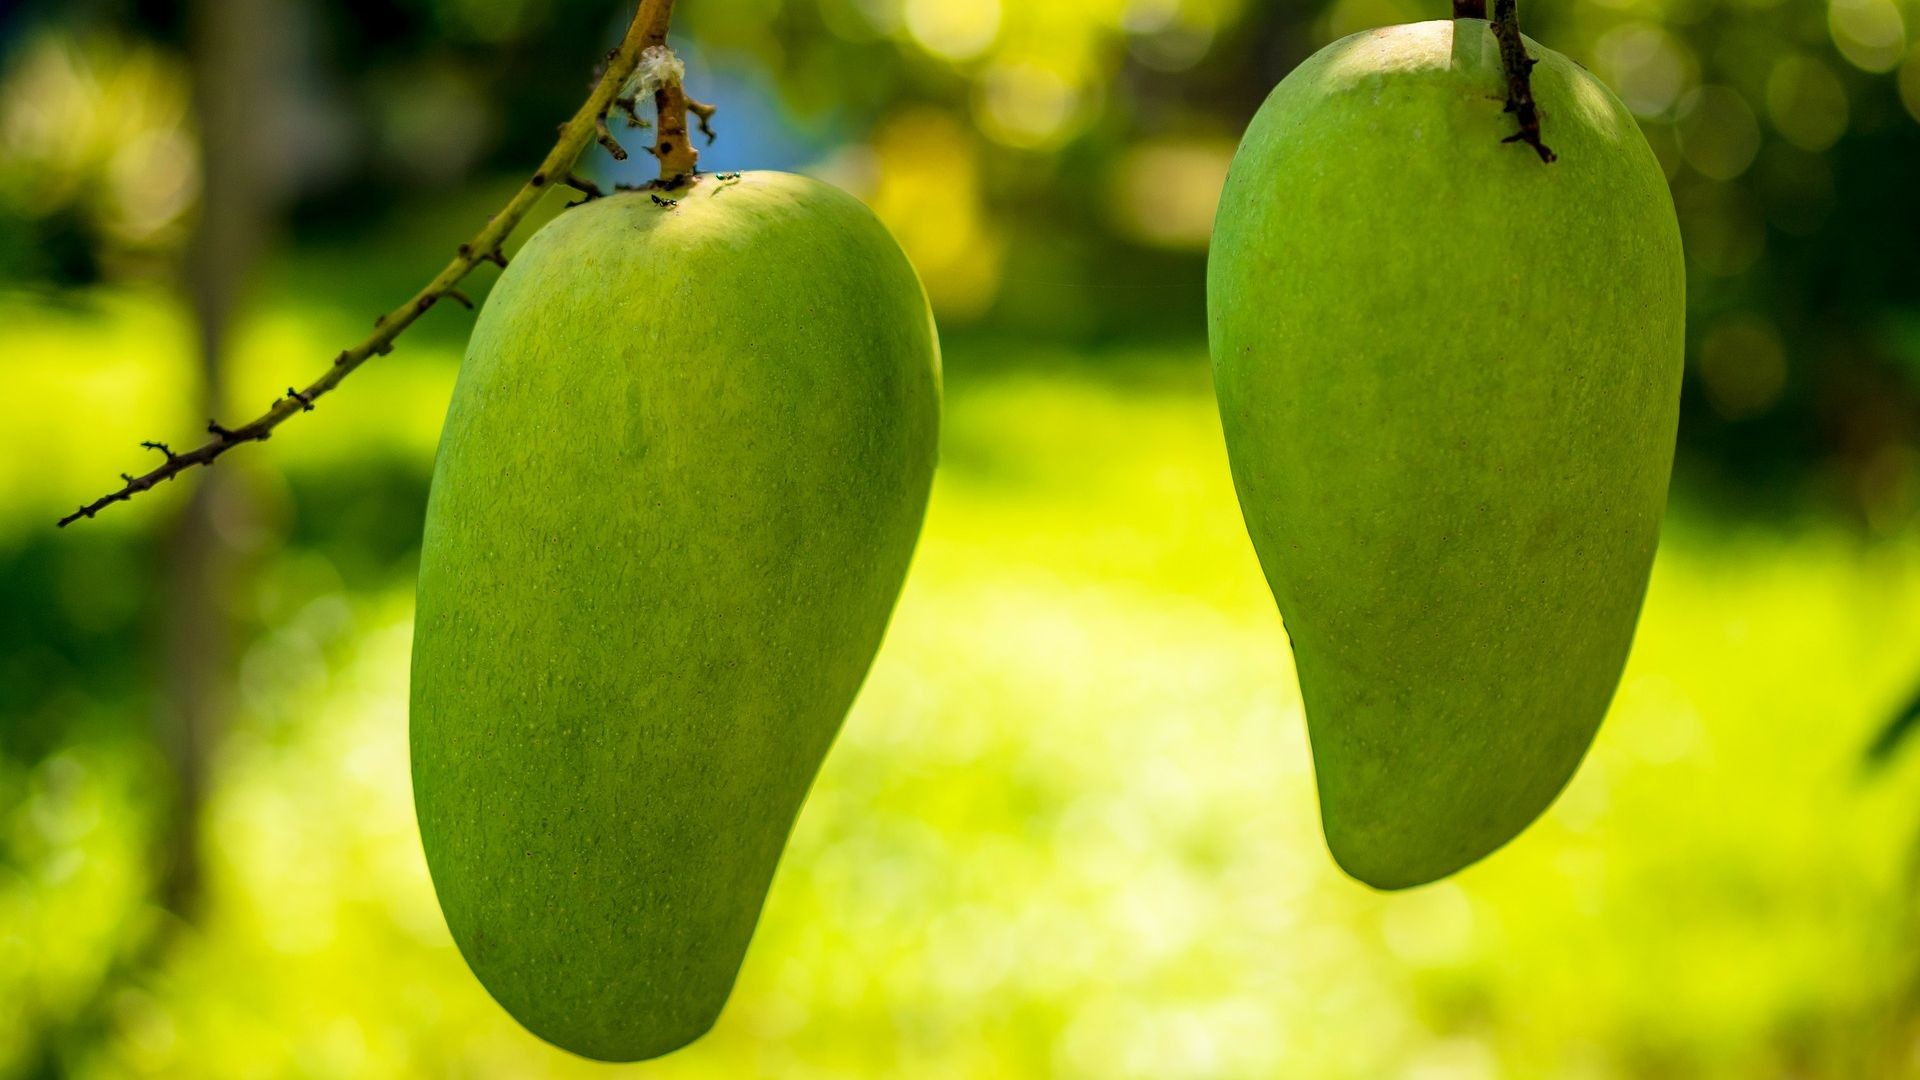 1920x1080 Green Mango Fruits with Blurred Background